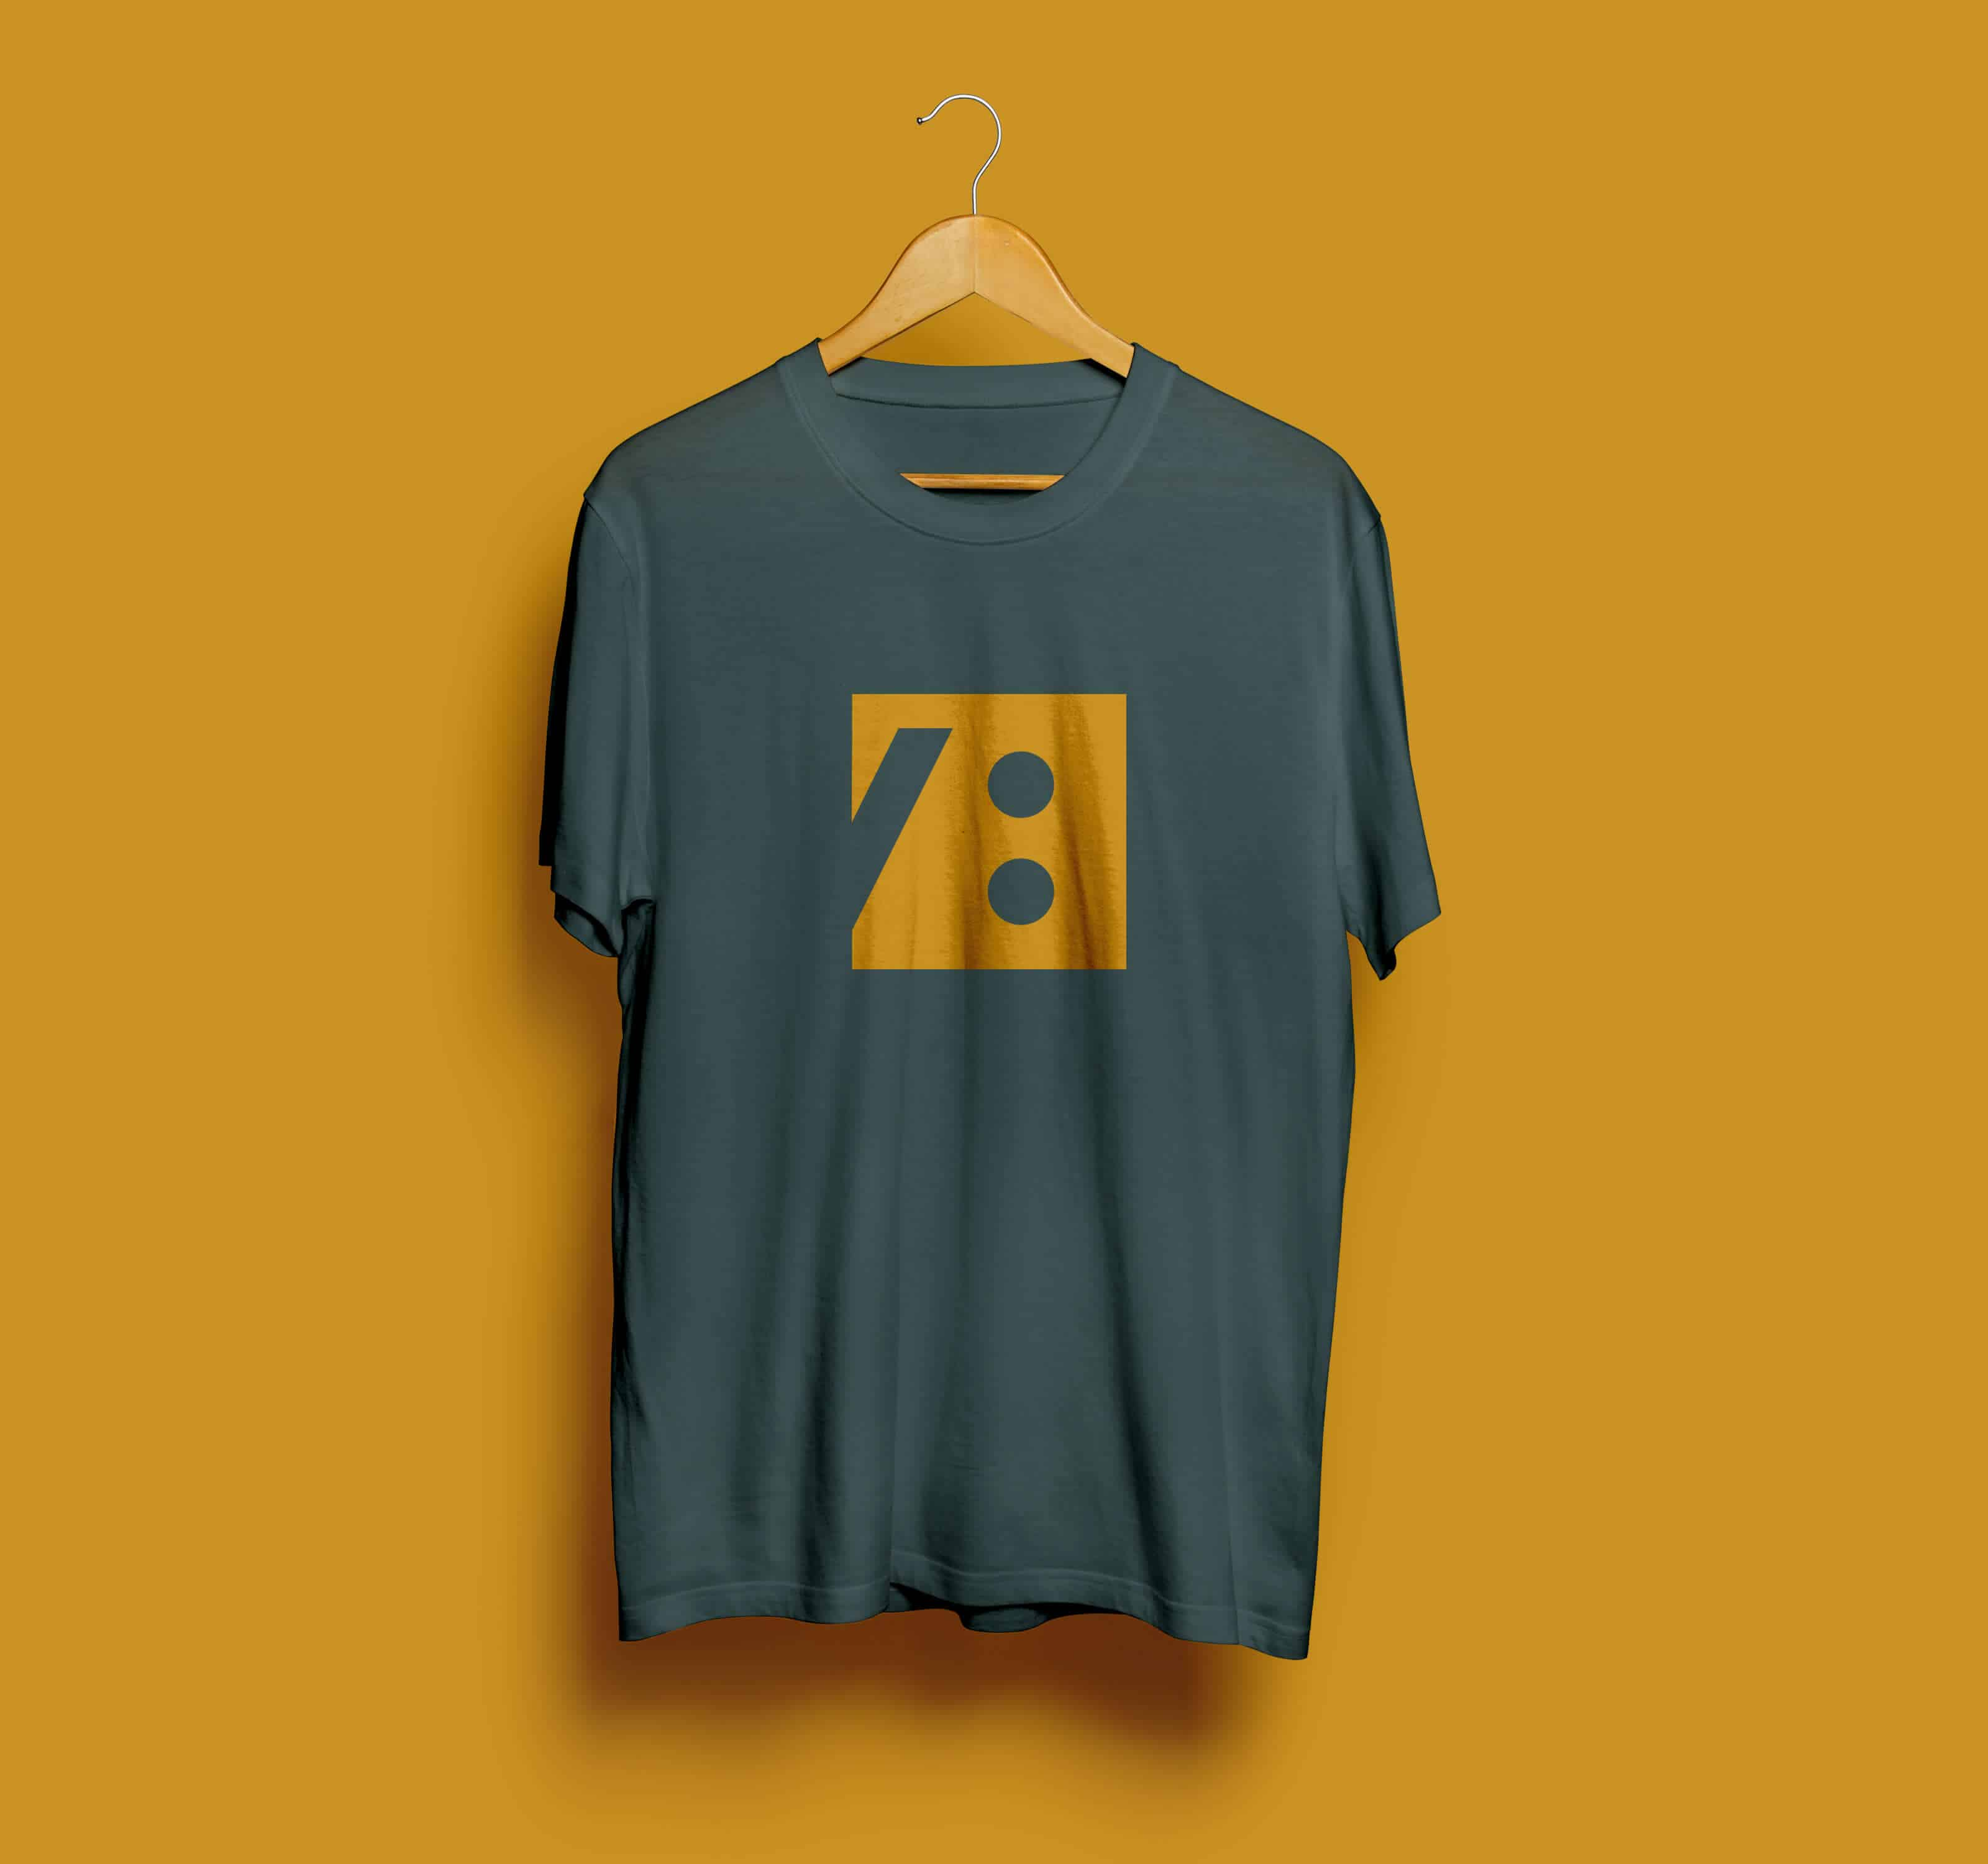 Mockup of Voisign golden coloured submark on an seaweed coloured tshirt